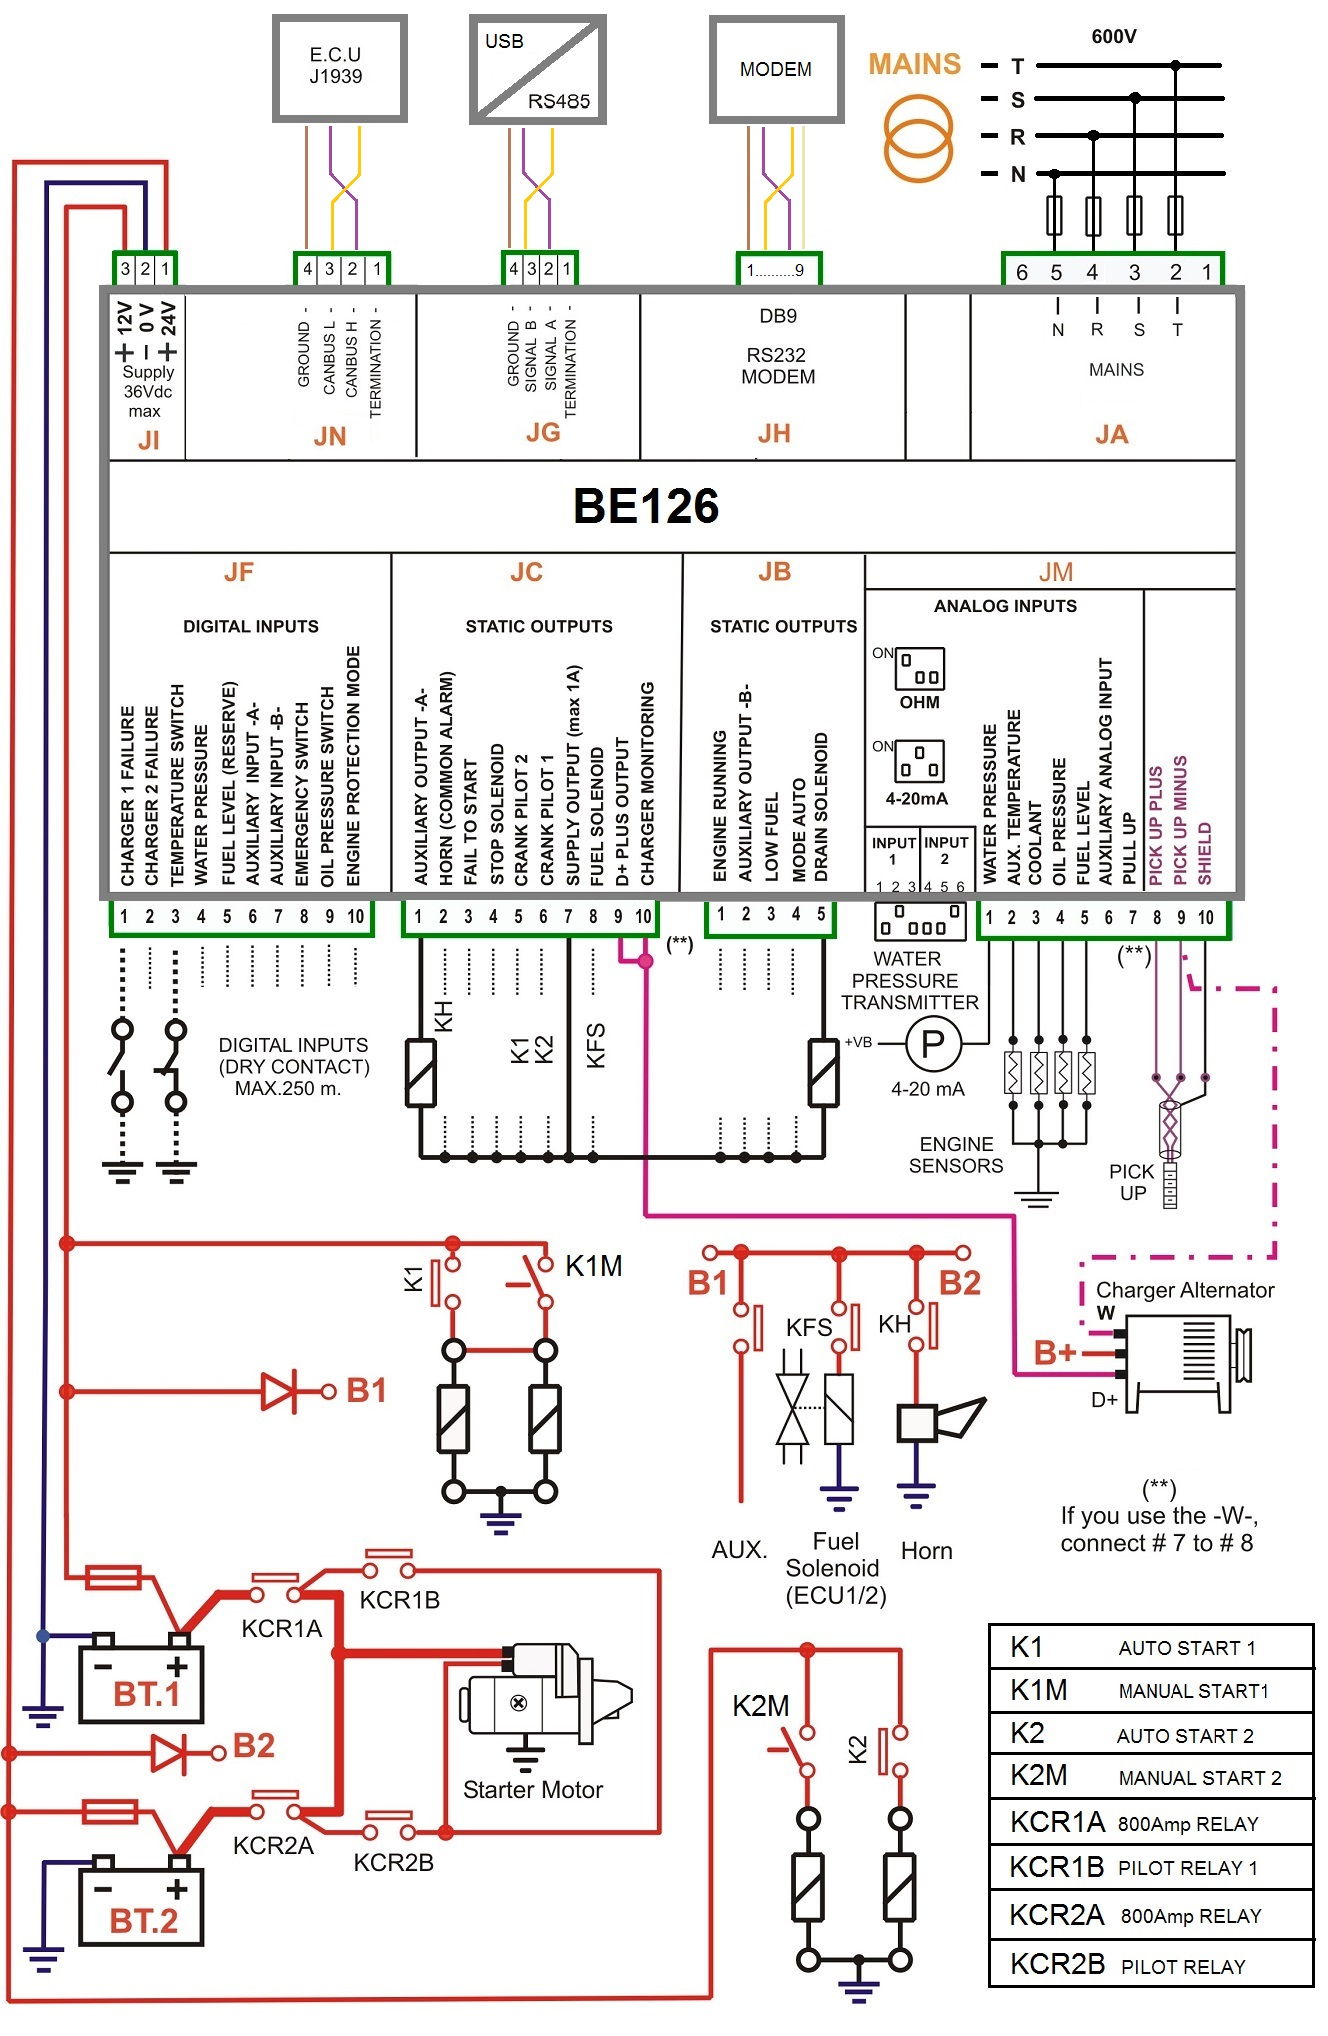 fire truck wiring diagram free picture schematic fire truck wiring diagram free picture schematic blog wiring diagram  fire truck wiring diagram free picture